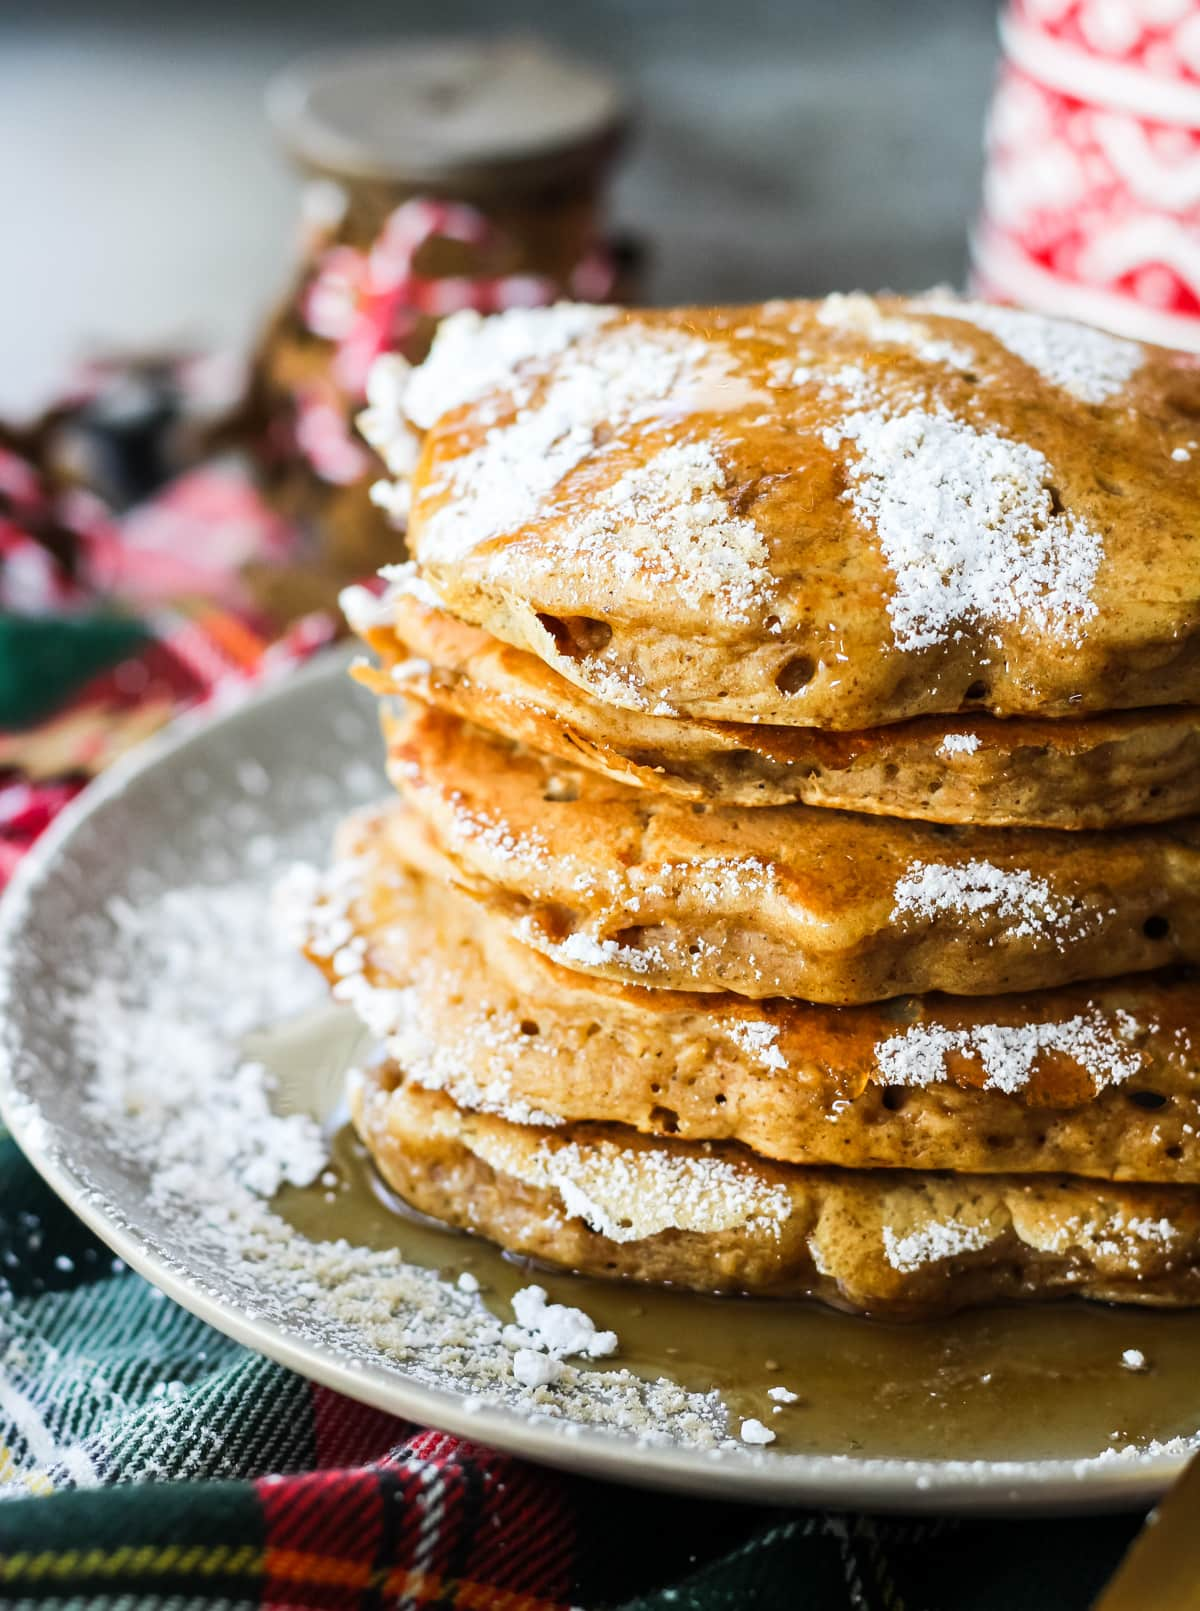 a side view of a stack of Gingerbread Pancakes sprinkled with icing sugar